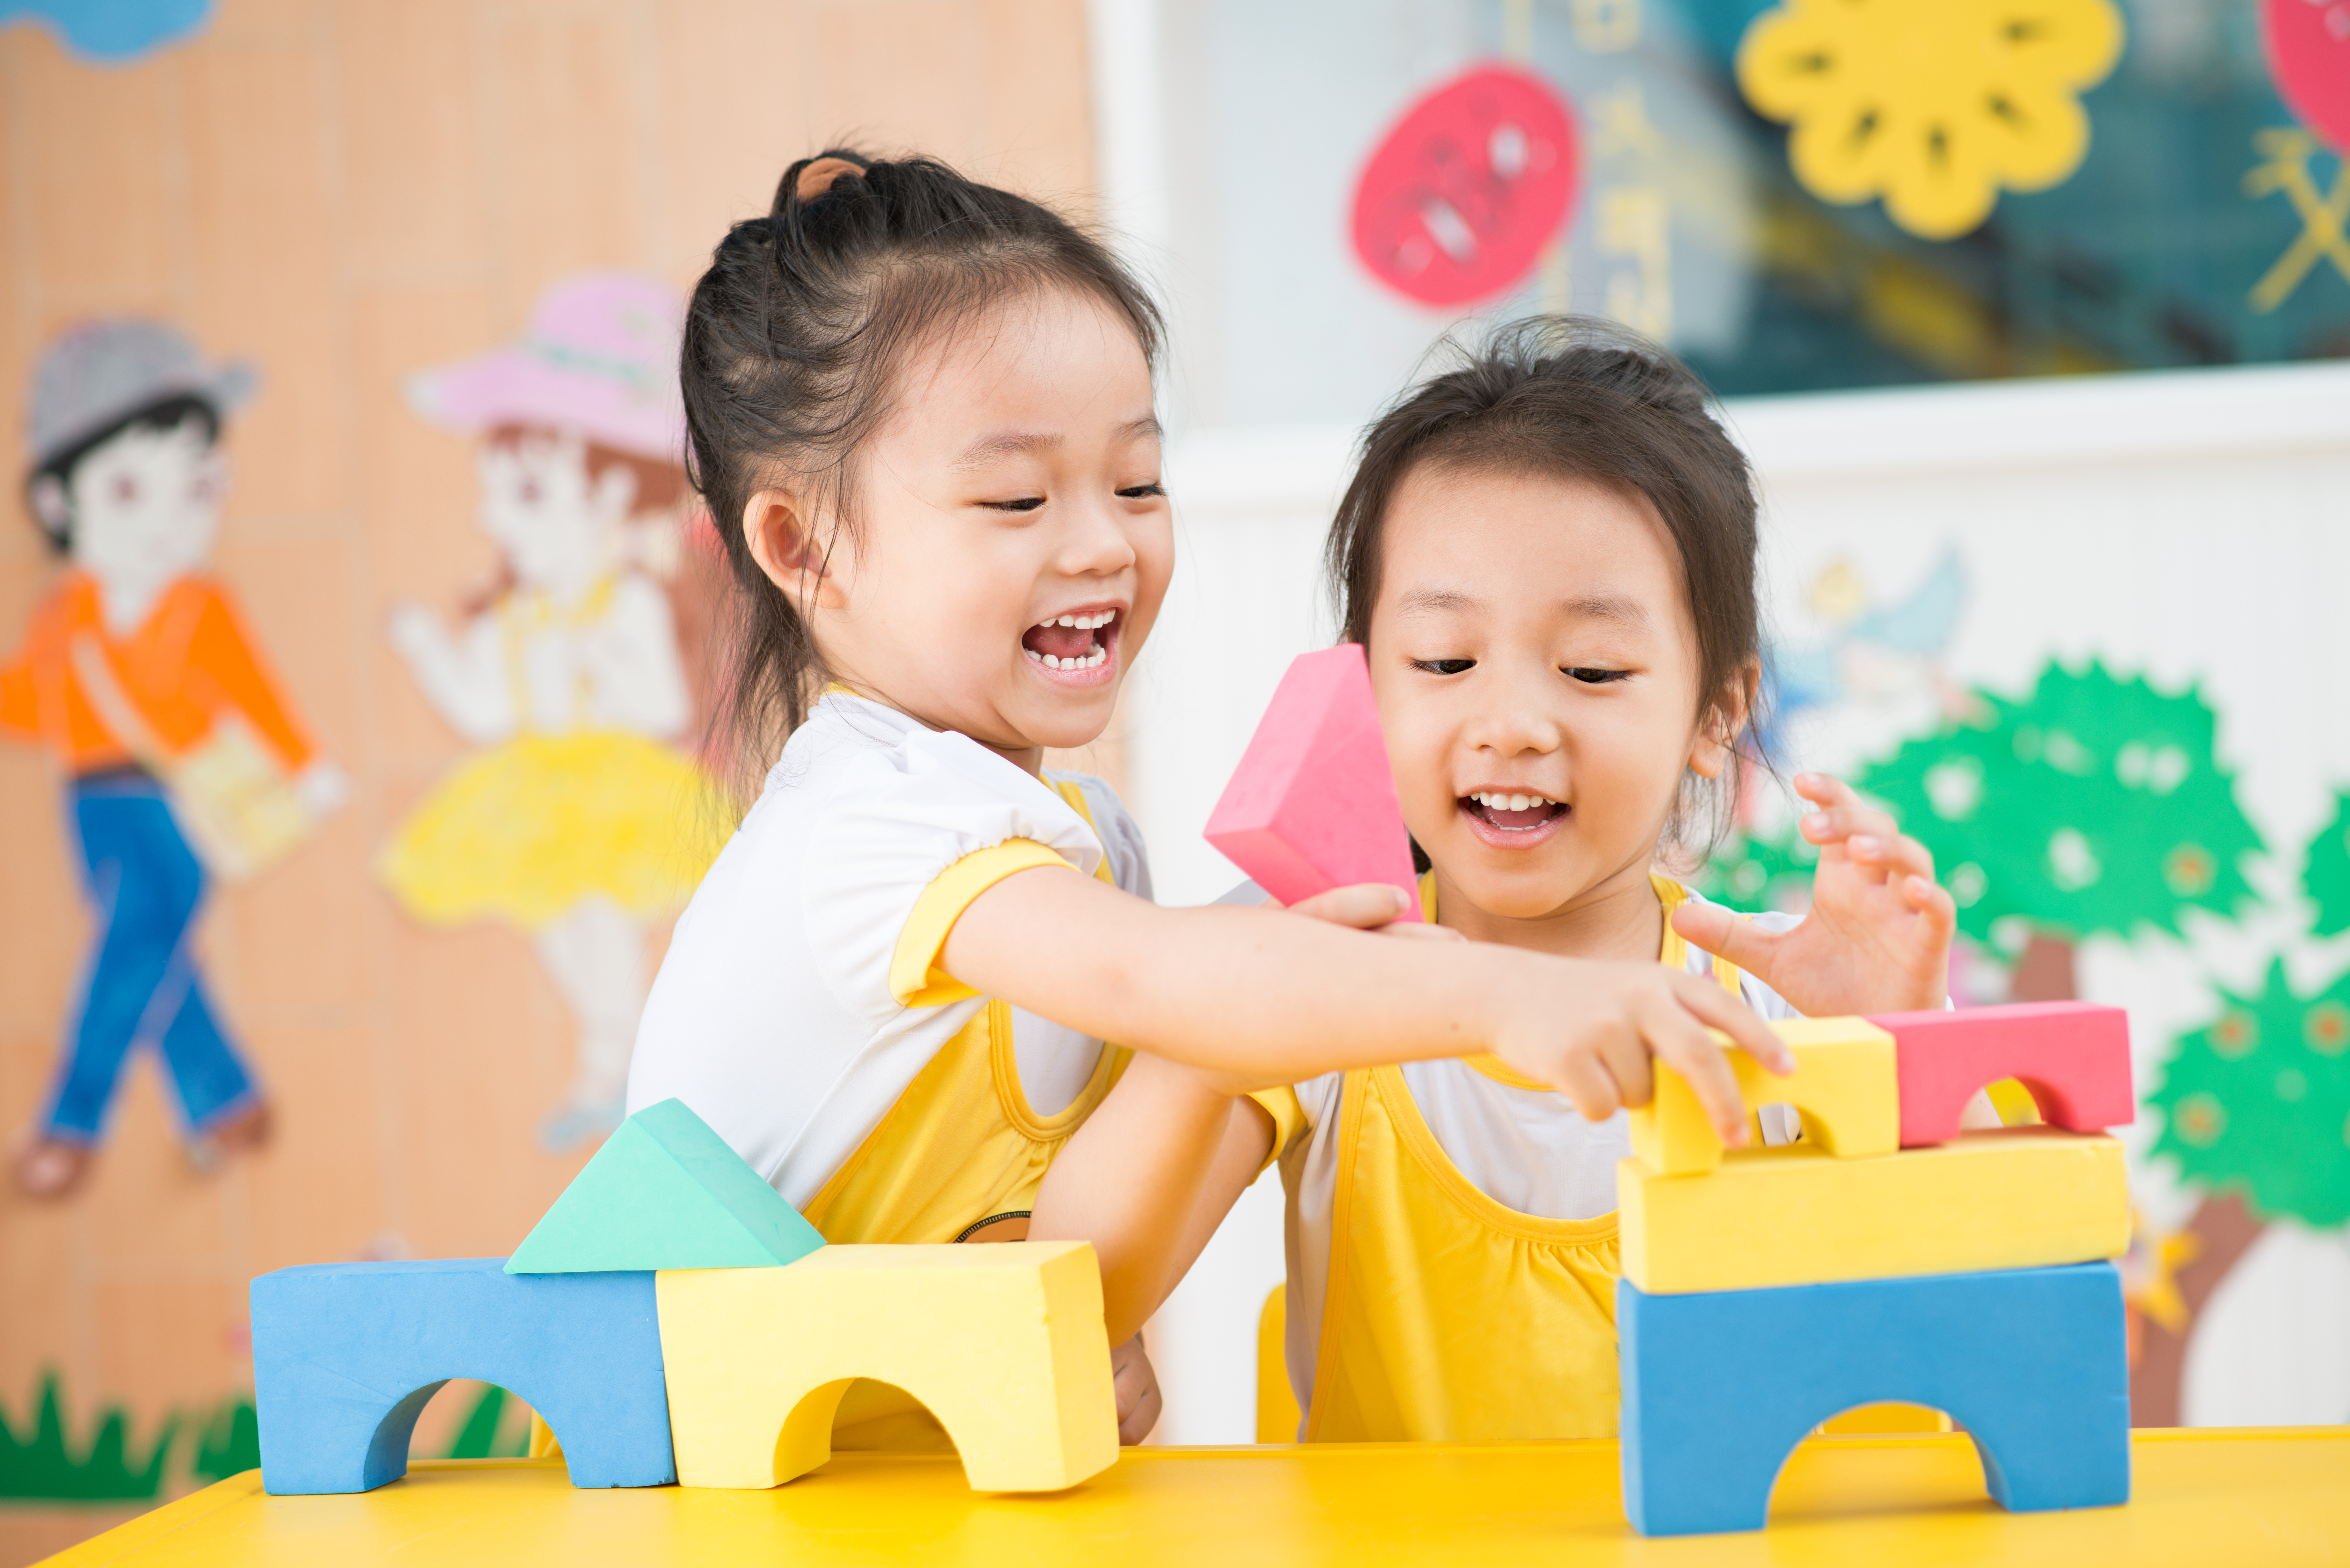 two little girls playing with blocks